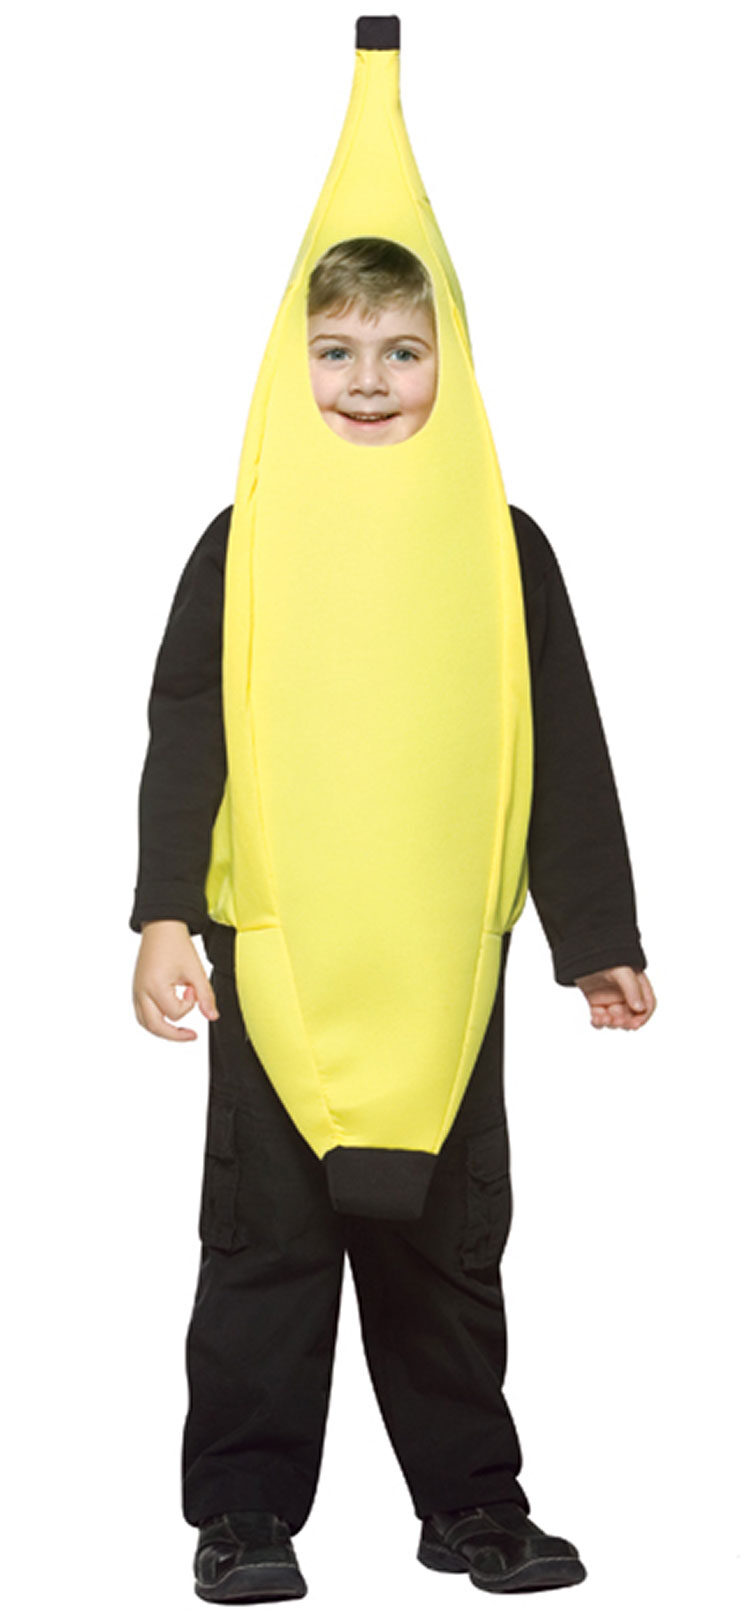 Lightweight Banana Toddler Costume  sc 1 st  Mr. Costumes & Lightweight Banana Toddler Costume - Mr. Costumes